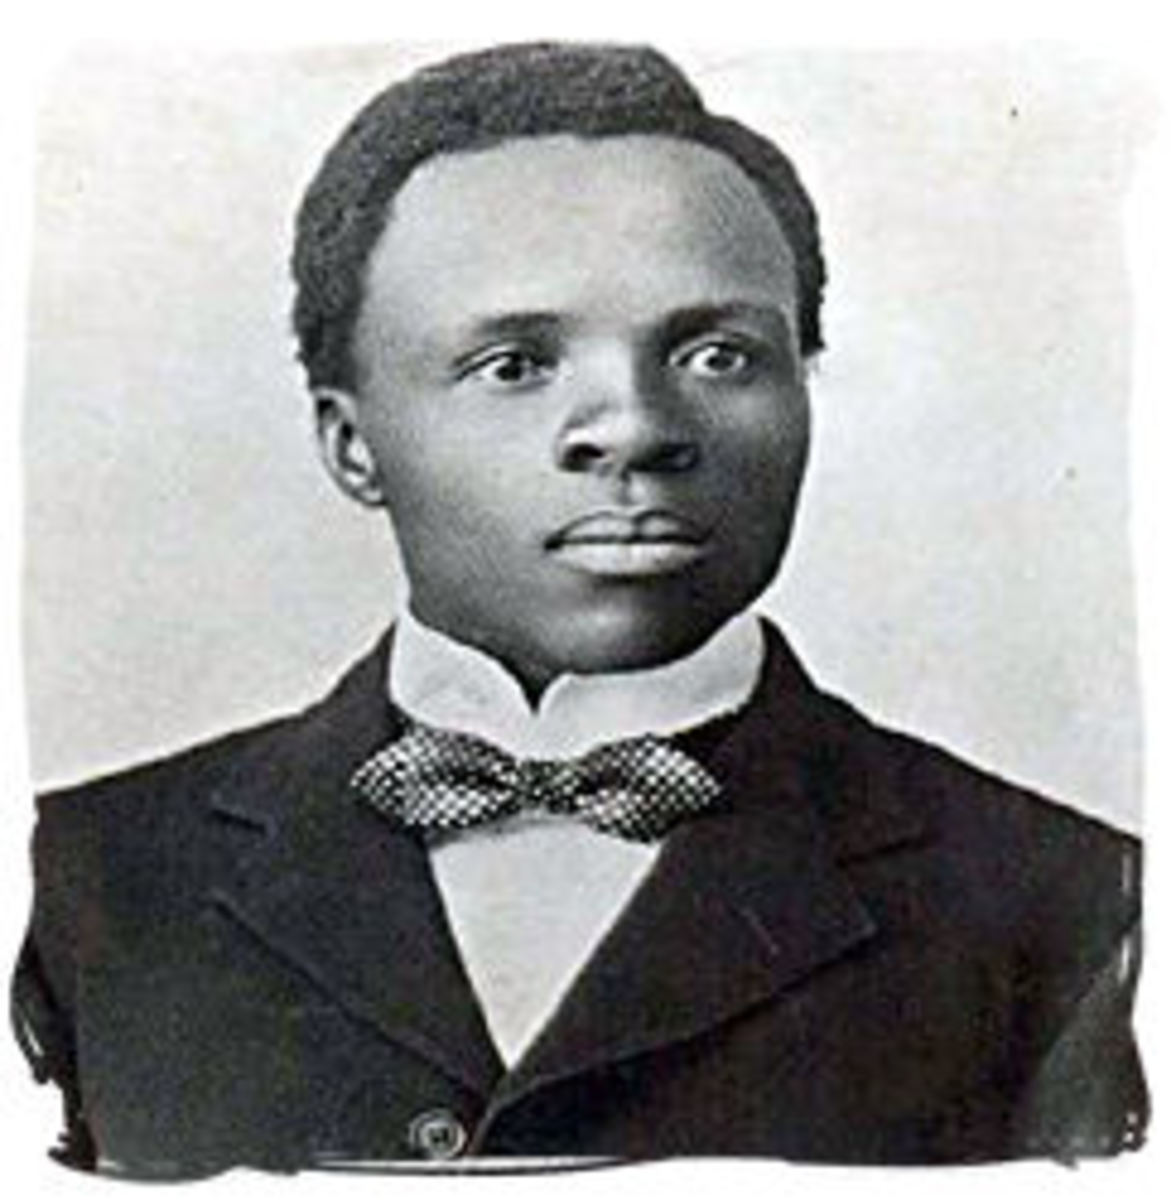 """Solomon """"Sol"""" Thekiso Plaatjie was the first African South African to write a novel - Literature in South Africa, and was the first secretary general of the then Native National Congress in 1912, now known as the African National Congress(ANC)"""